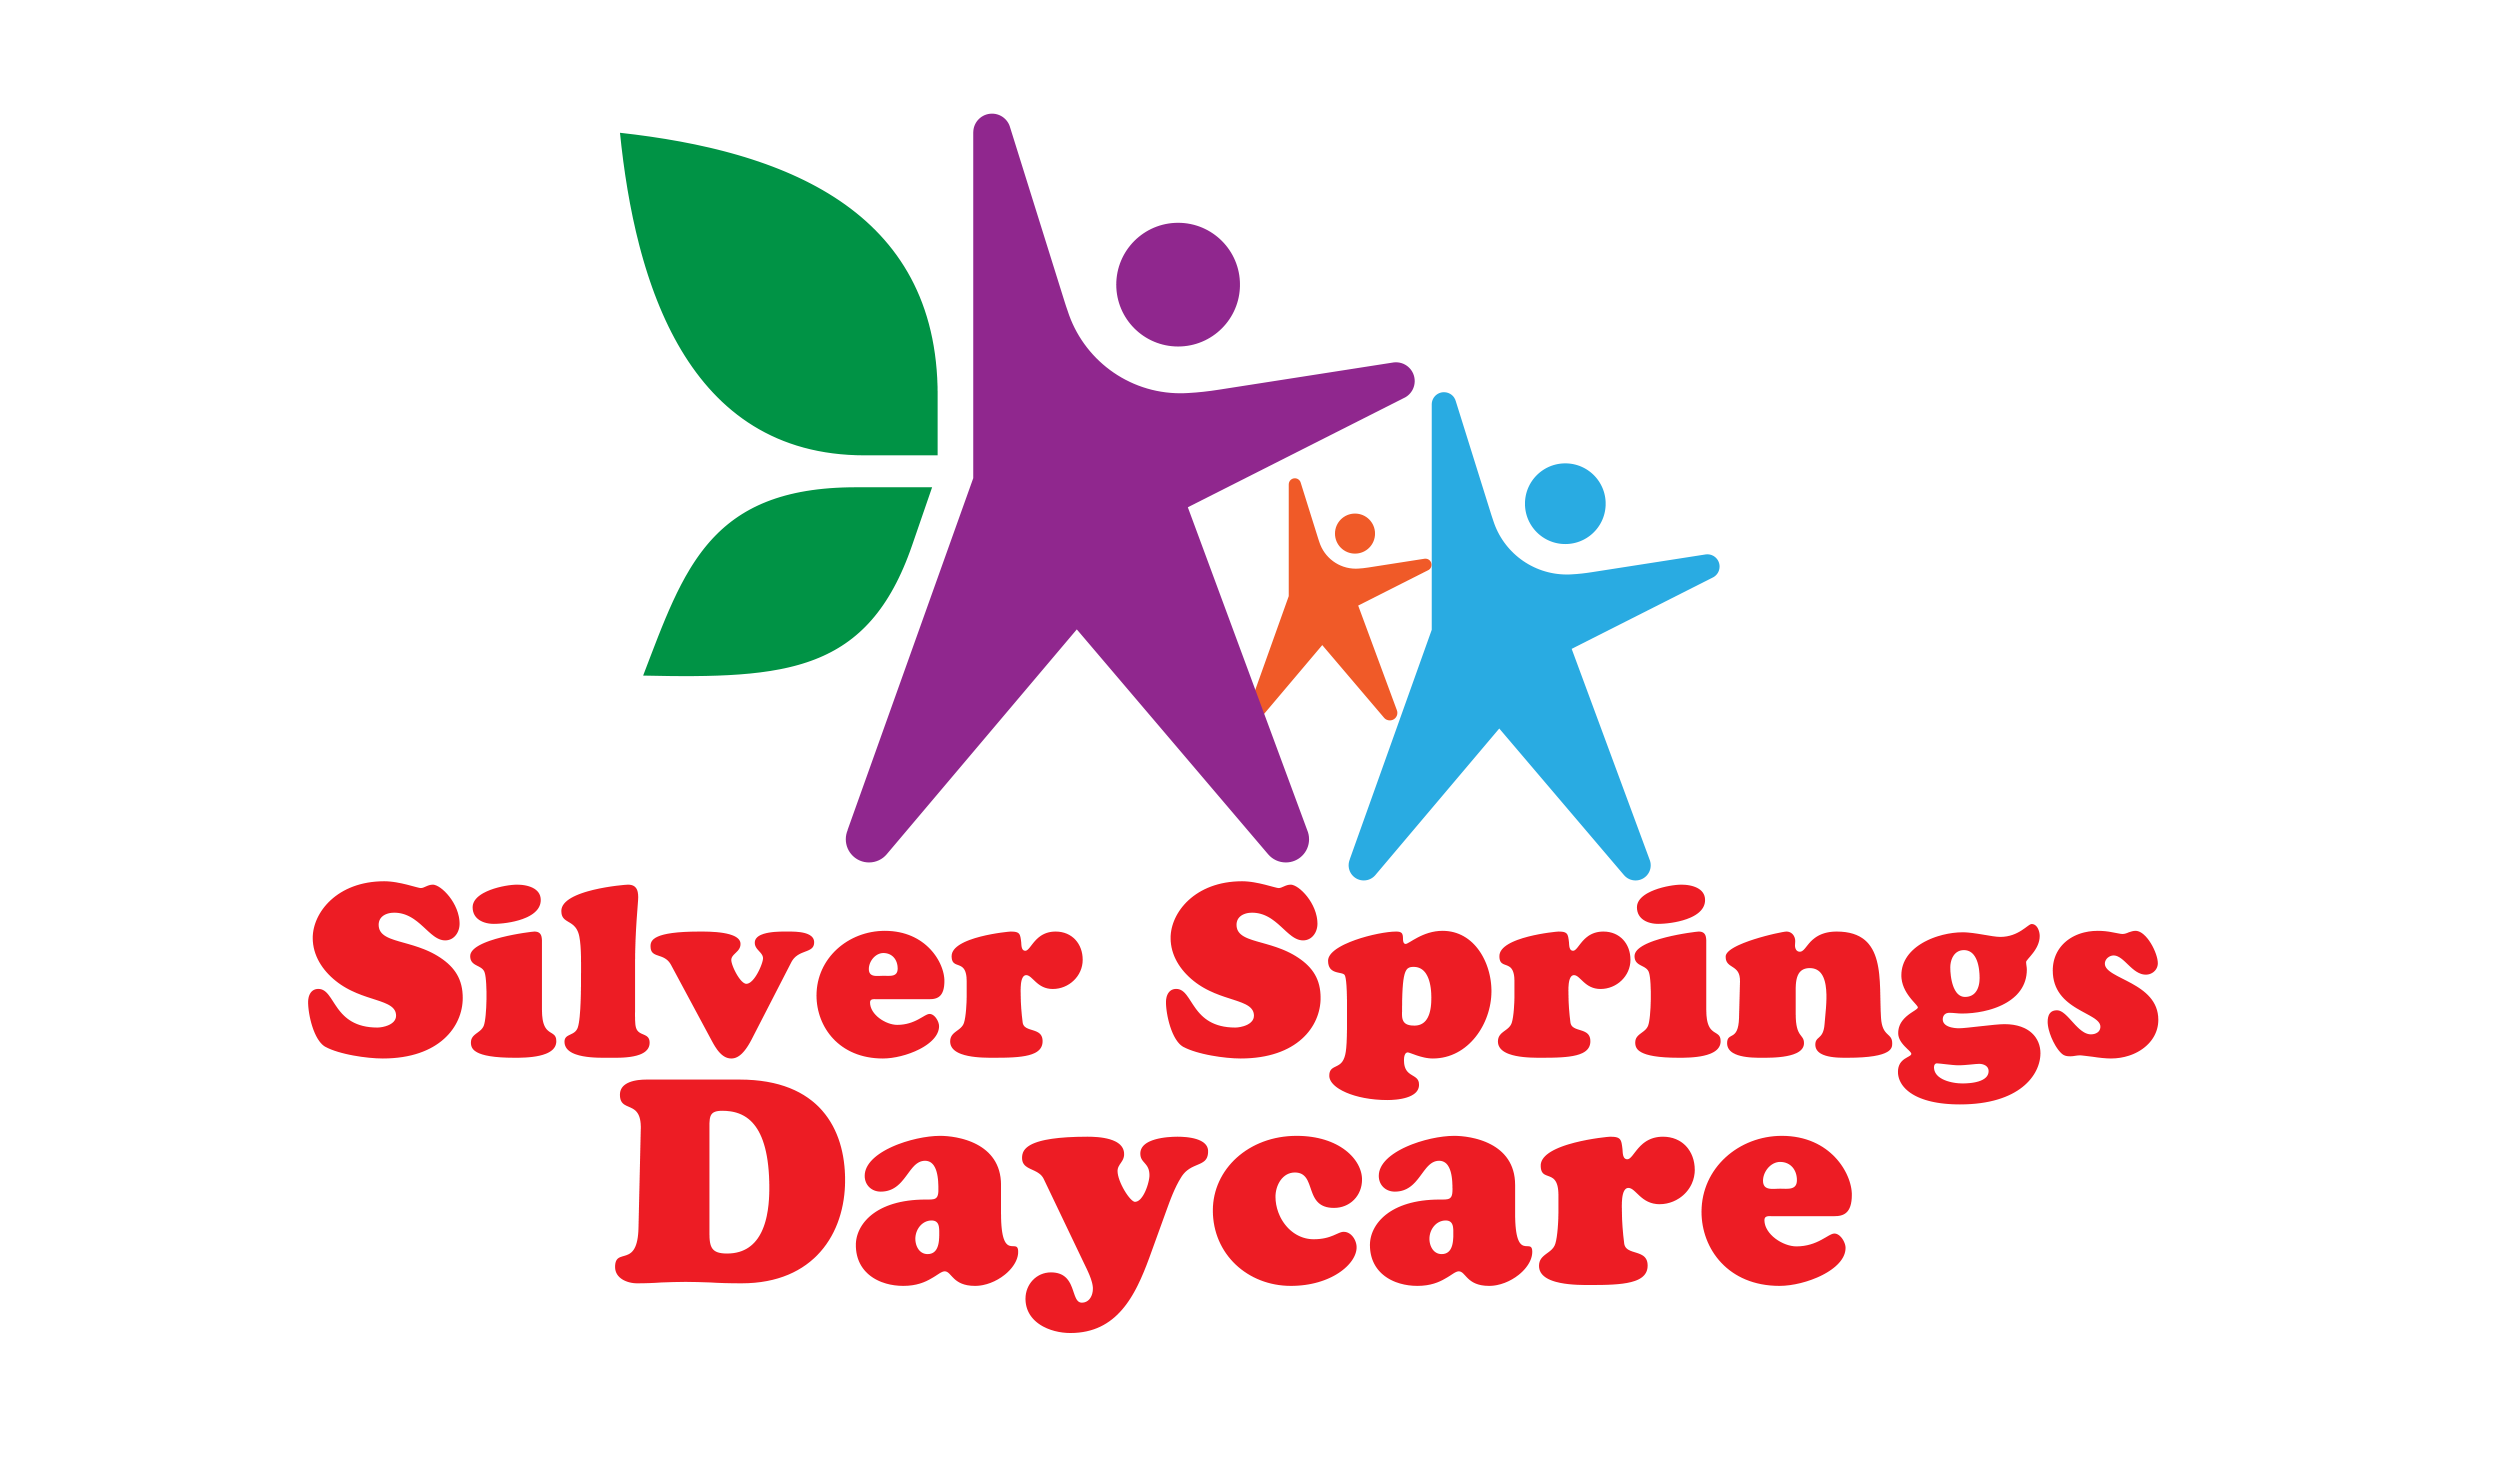 Silver Springs Daycare